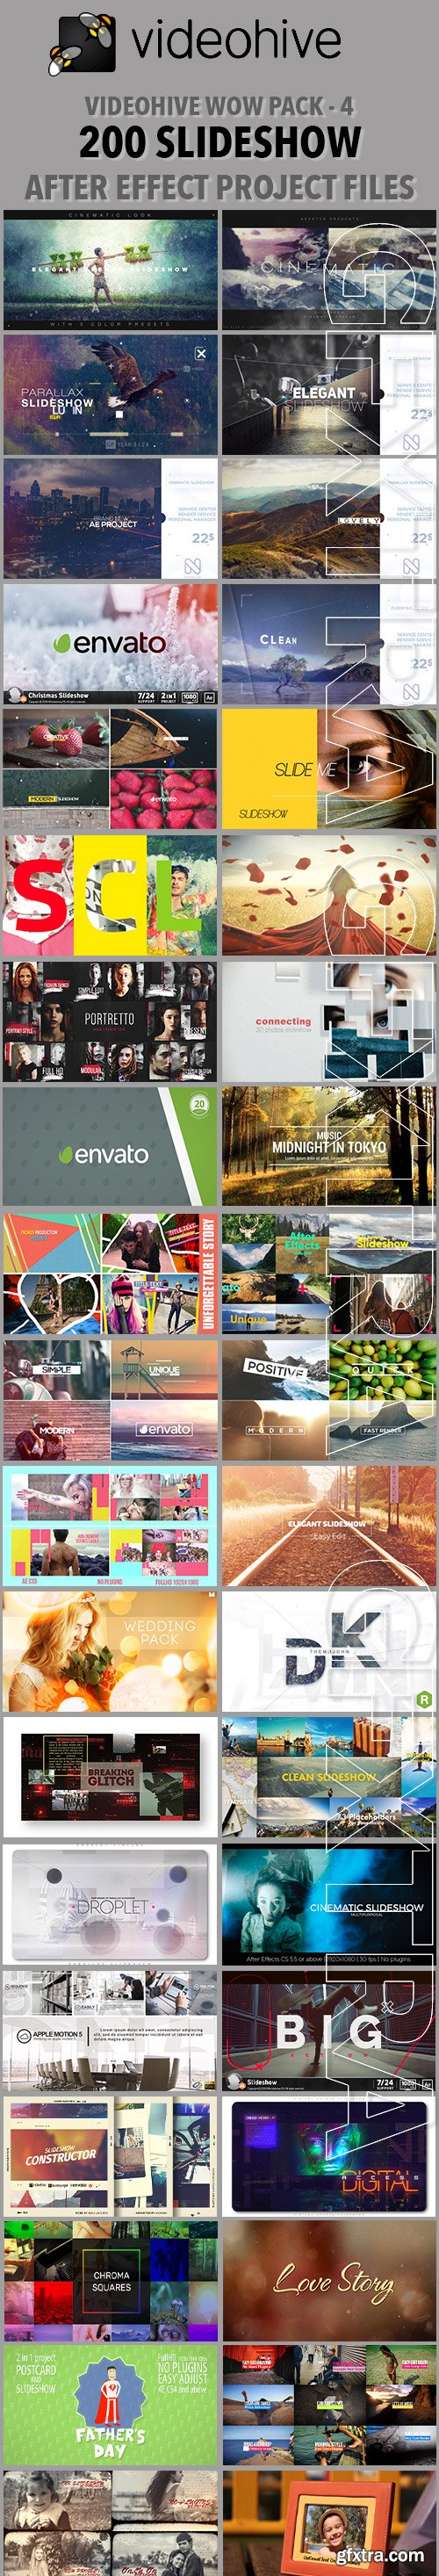 Videohive Wow Pack - 4 - 200 SlideShow After Effect Project Files